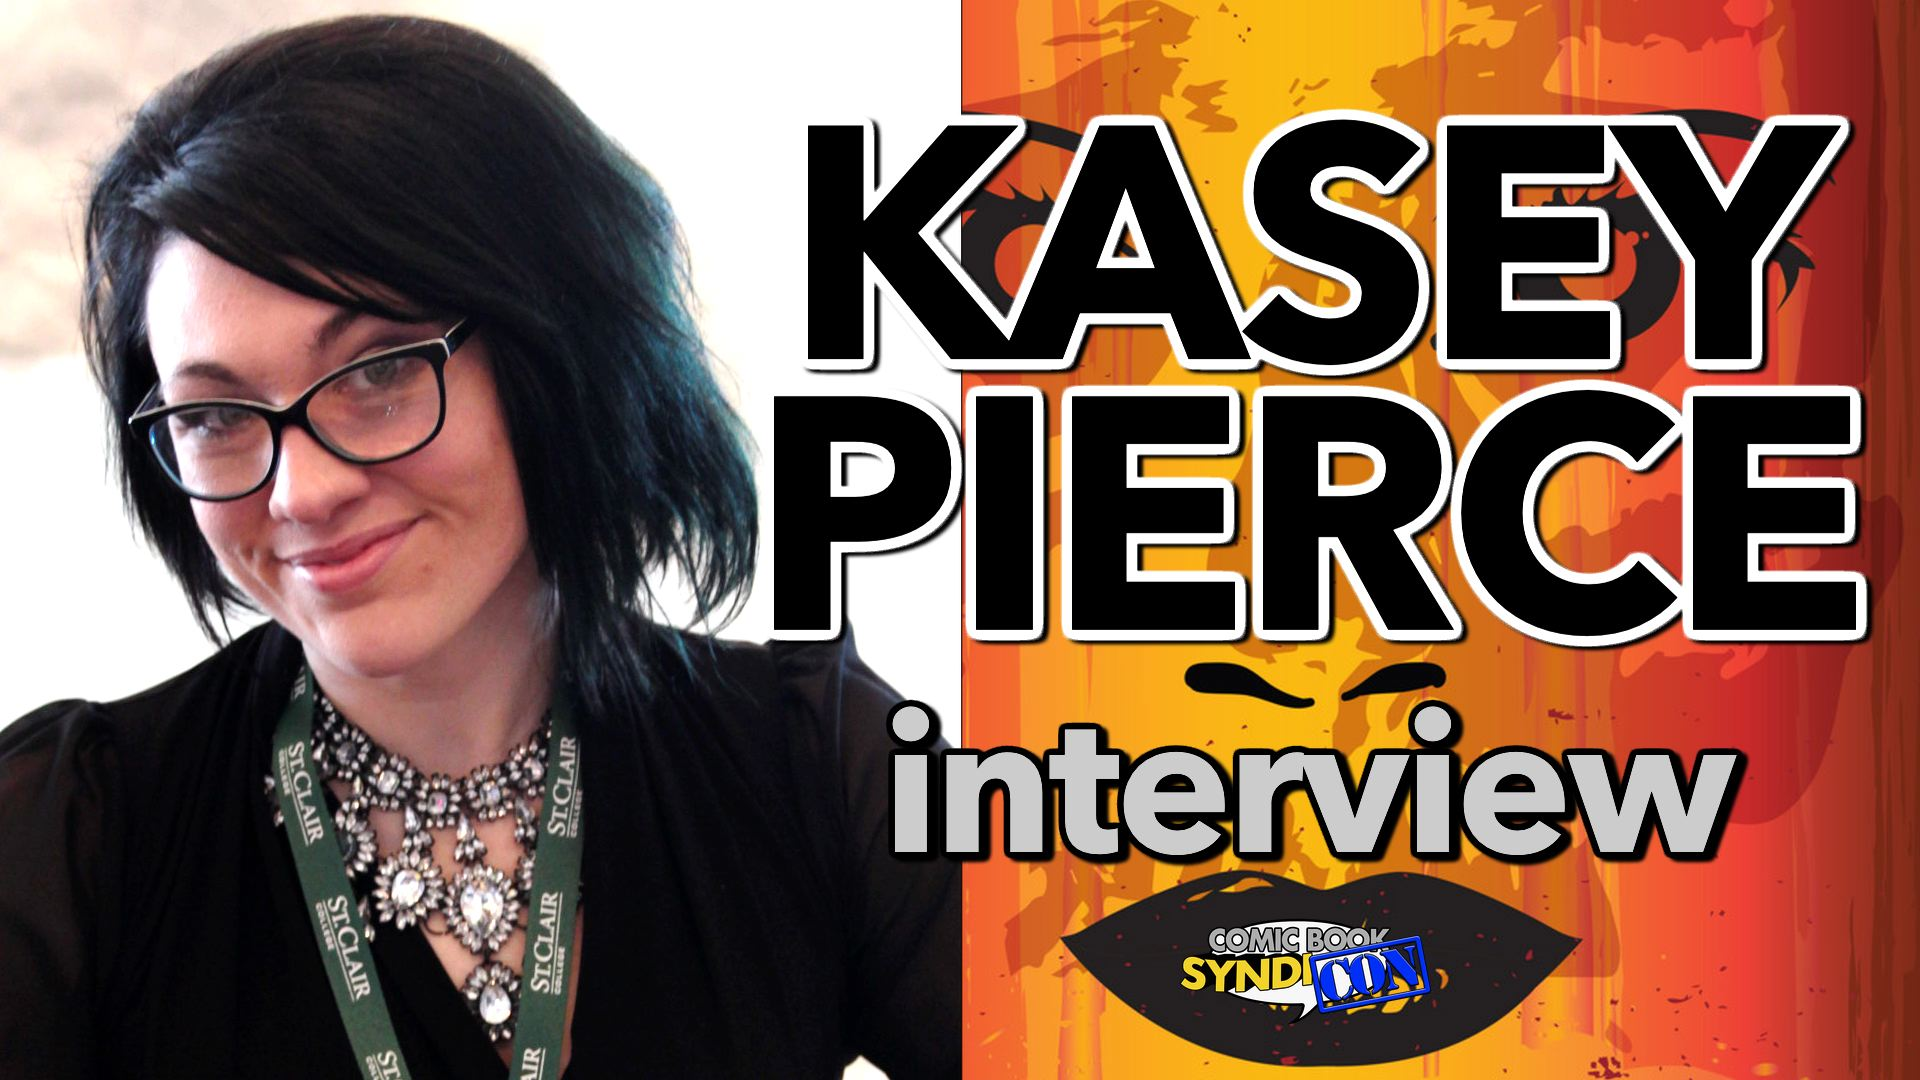 Interview with Kasey Pierce